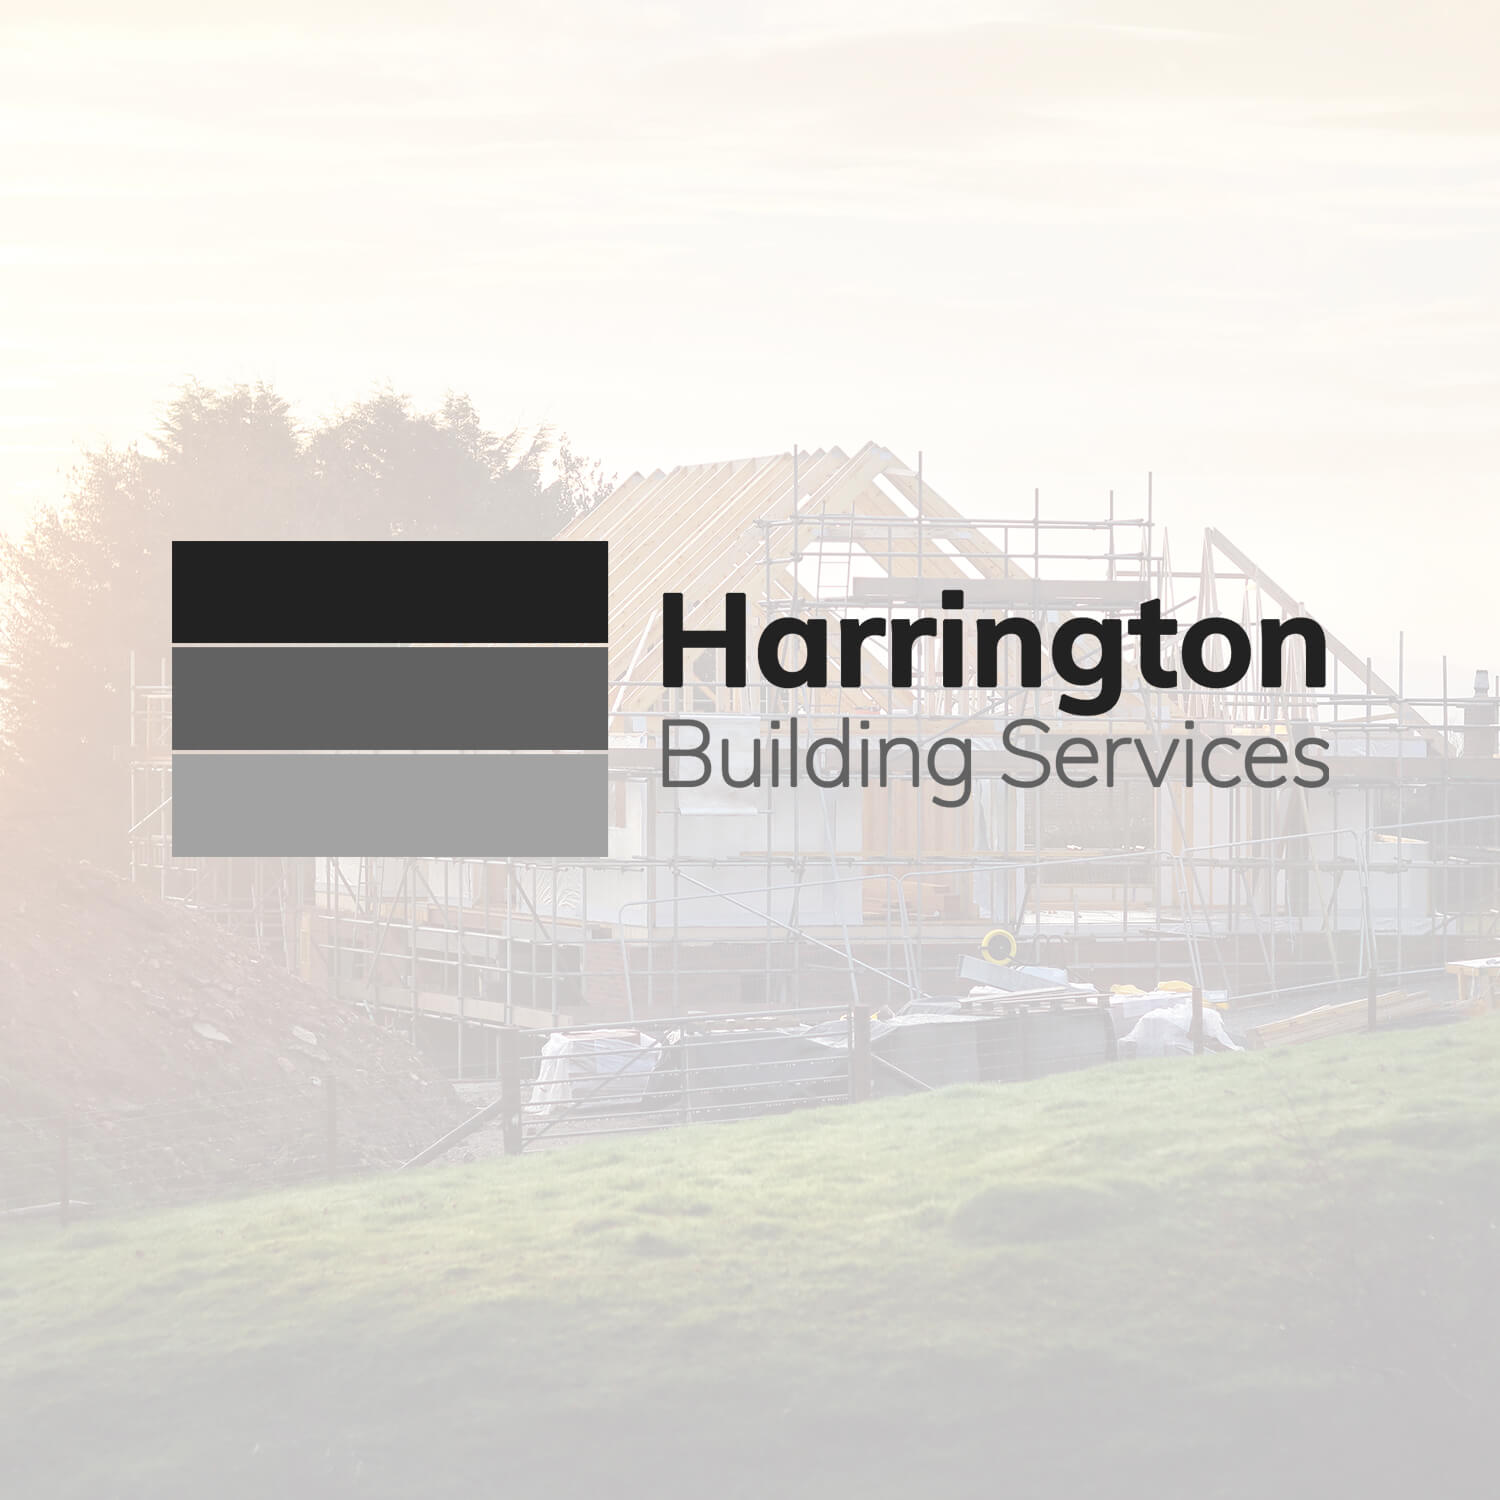 Harrington Building Services